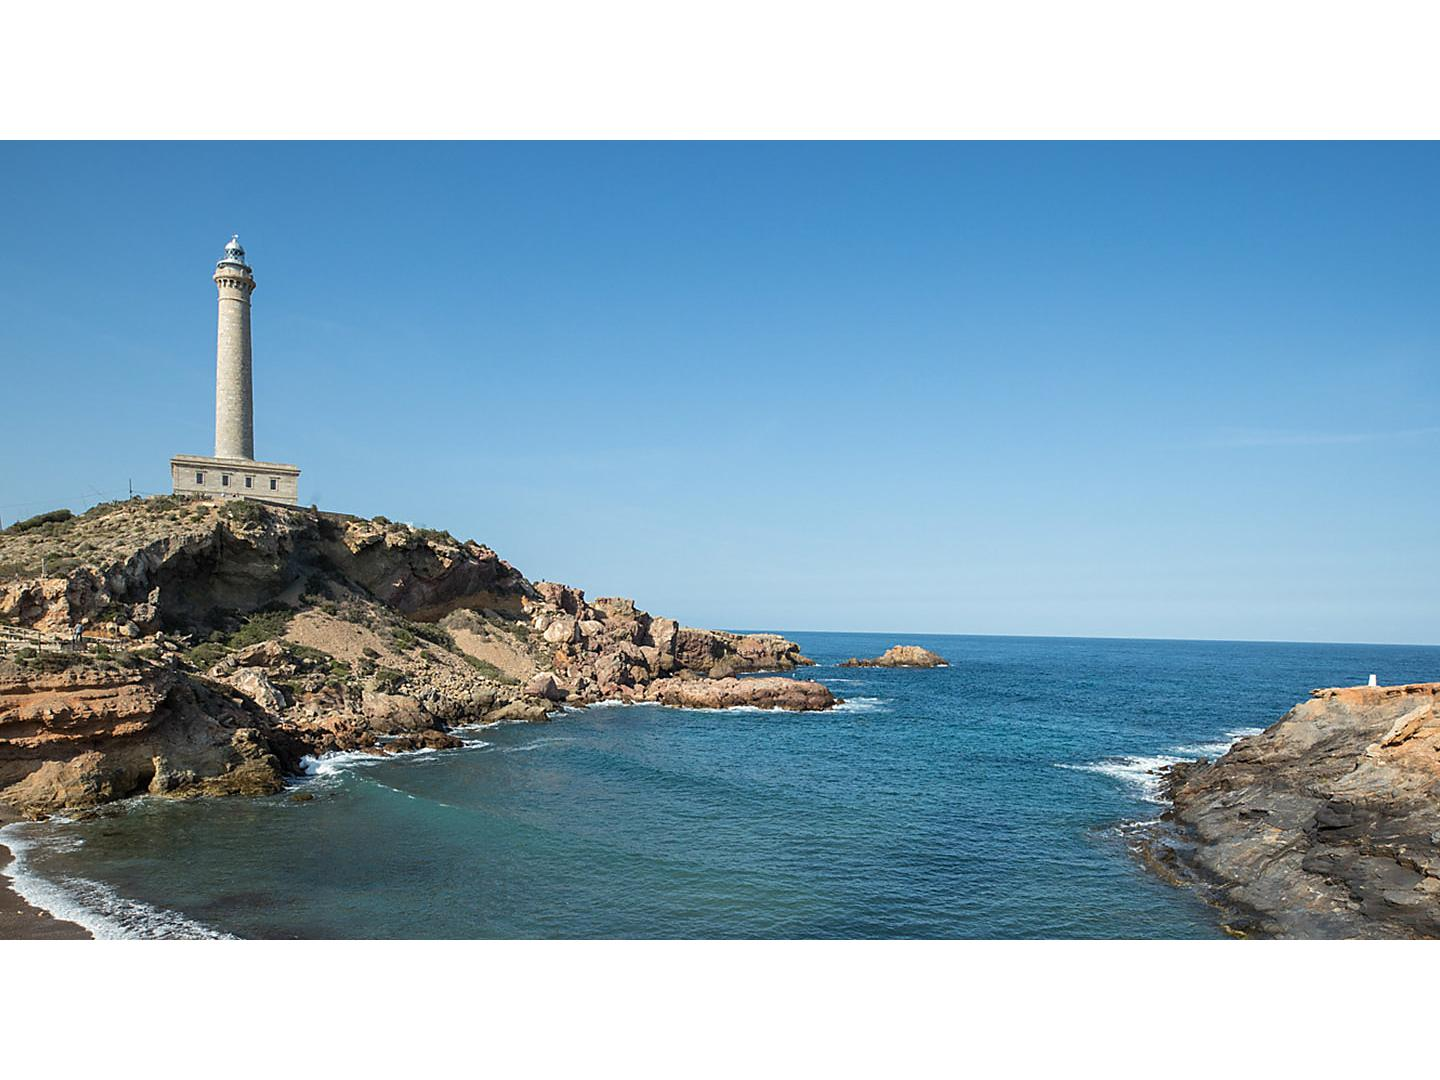 Cartagena, Spain Lighthouse